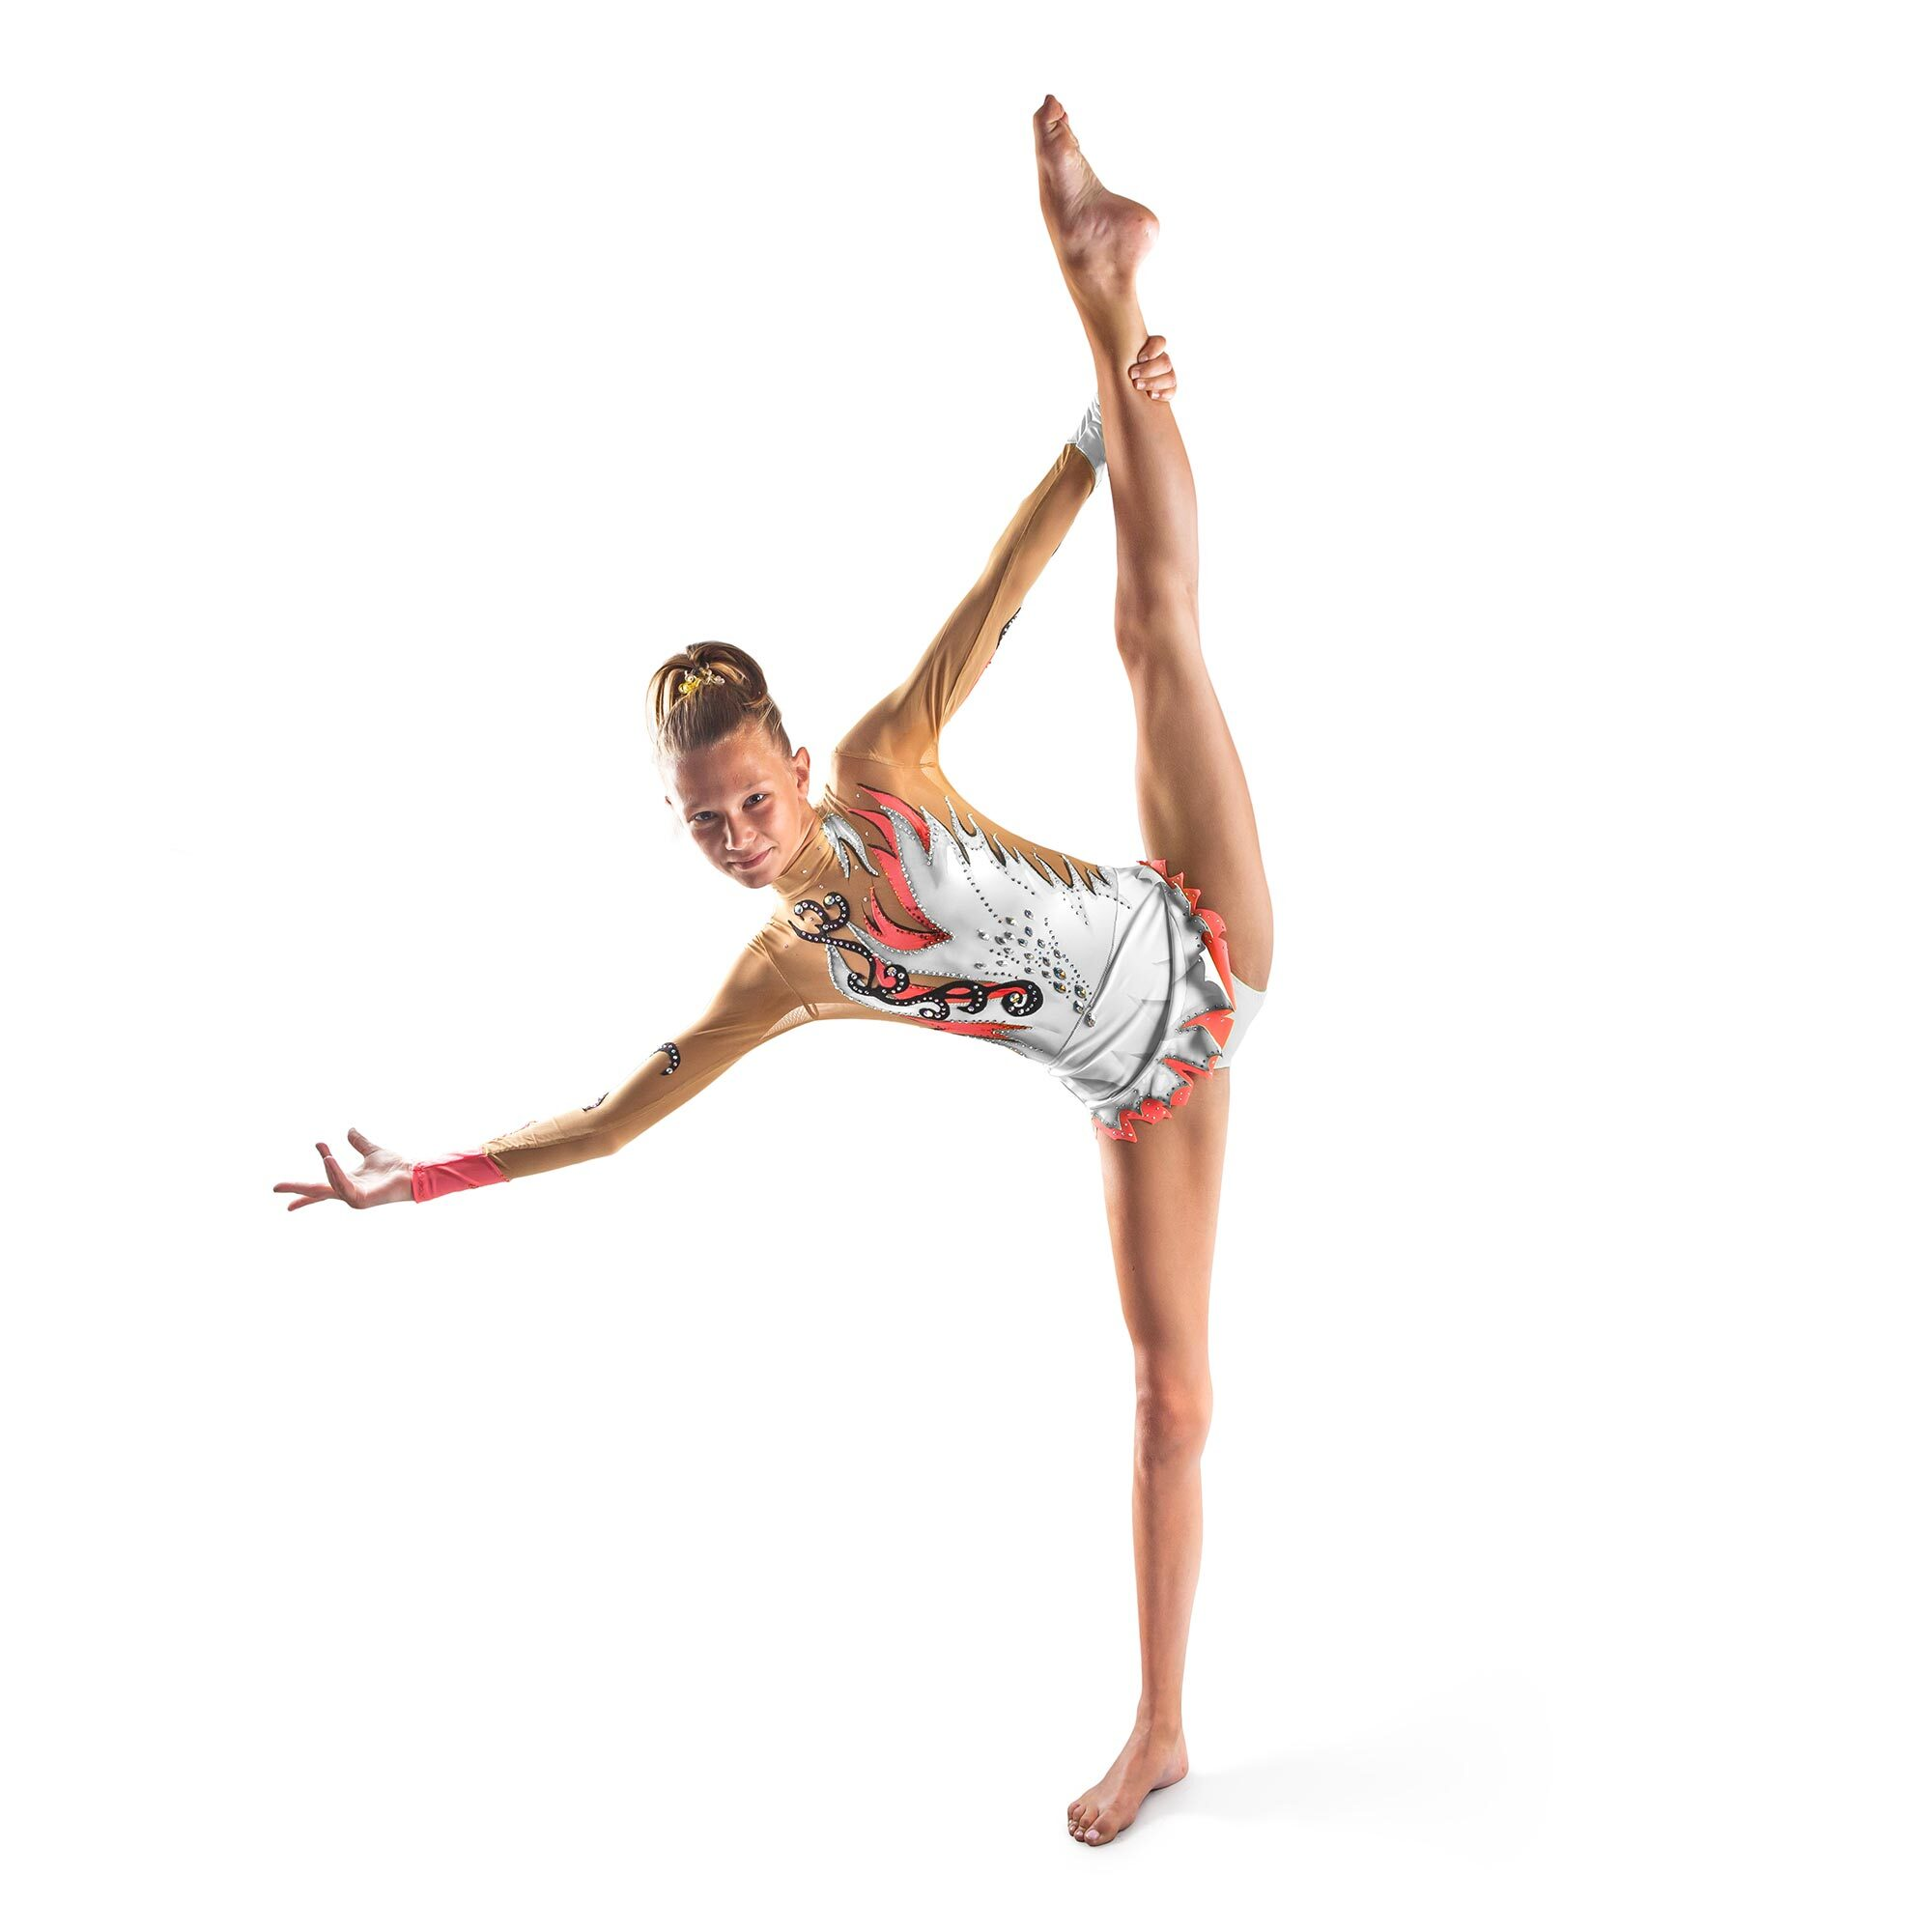 White, coral, black Rhythmic Gymnastics Leotard 171 made by gymnast's measurements for trainings and competitions